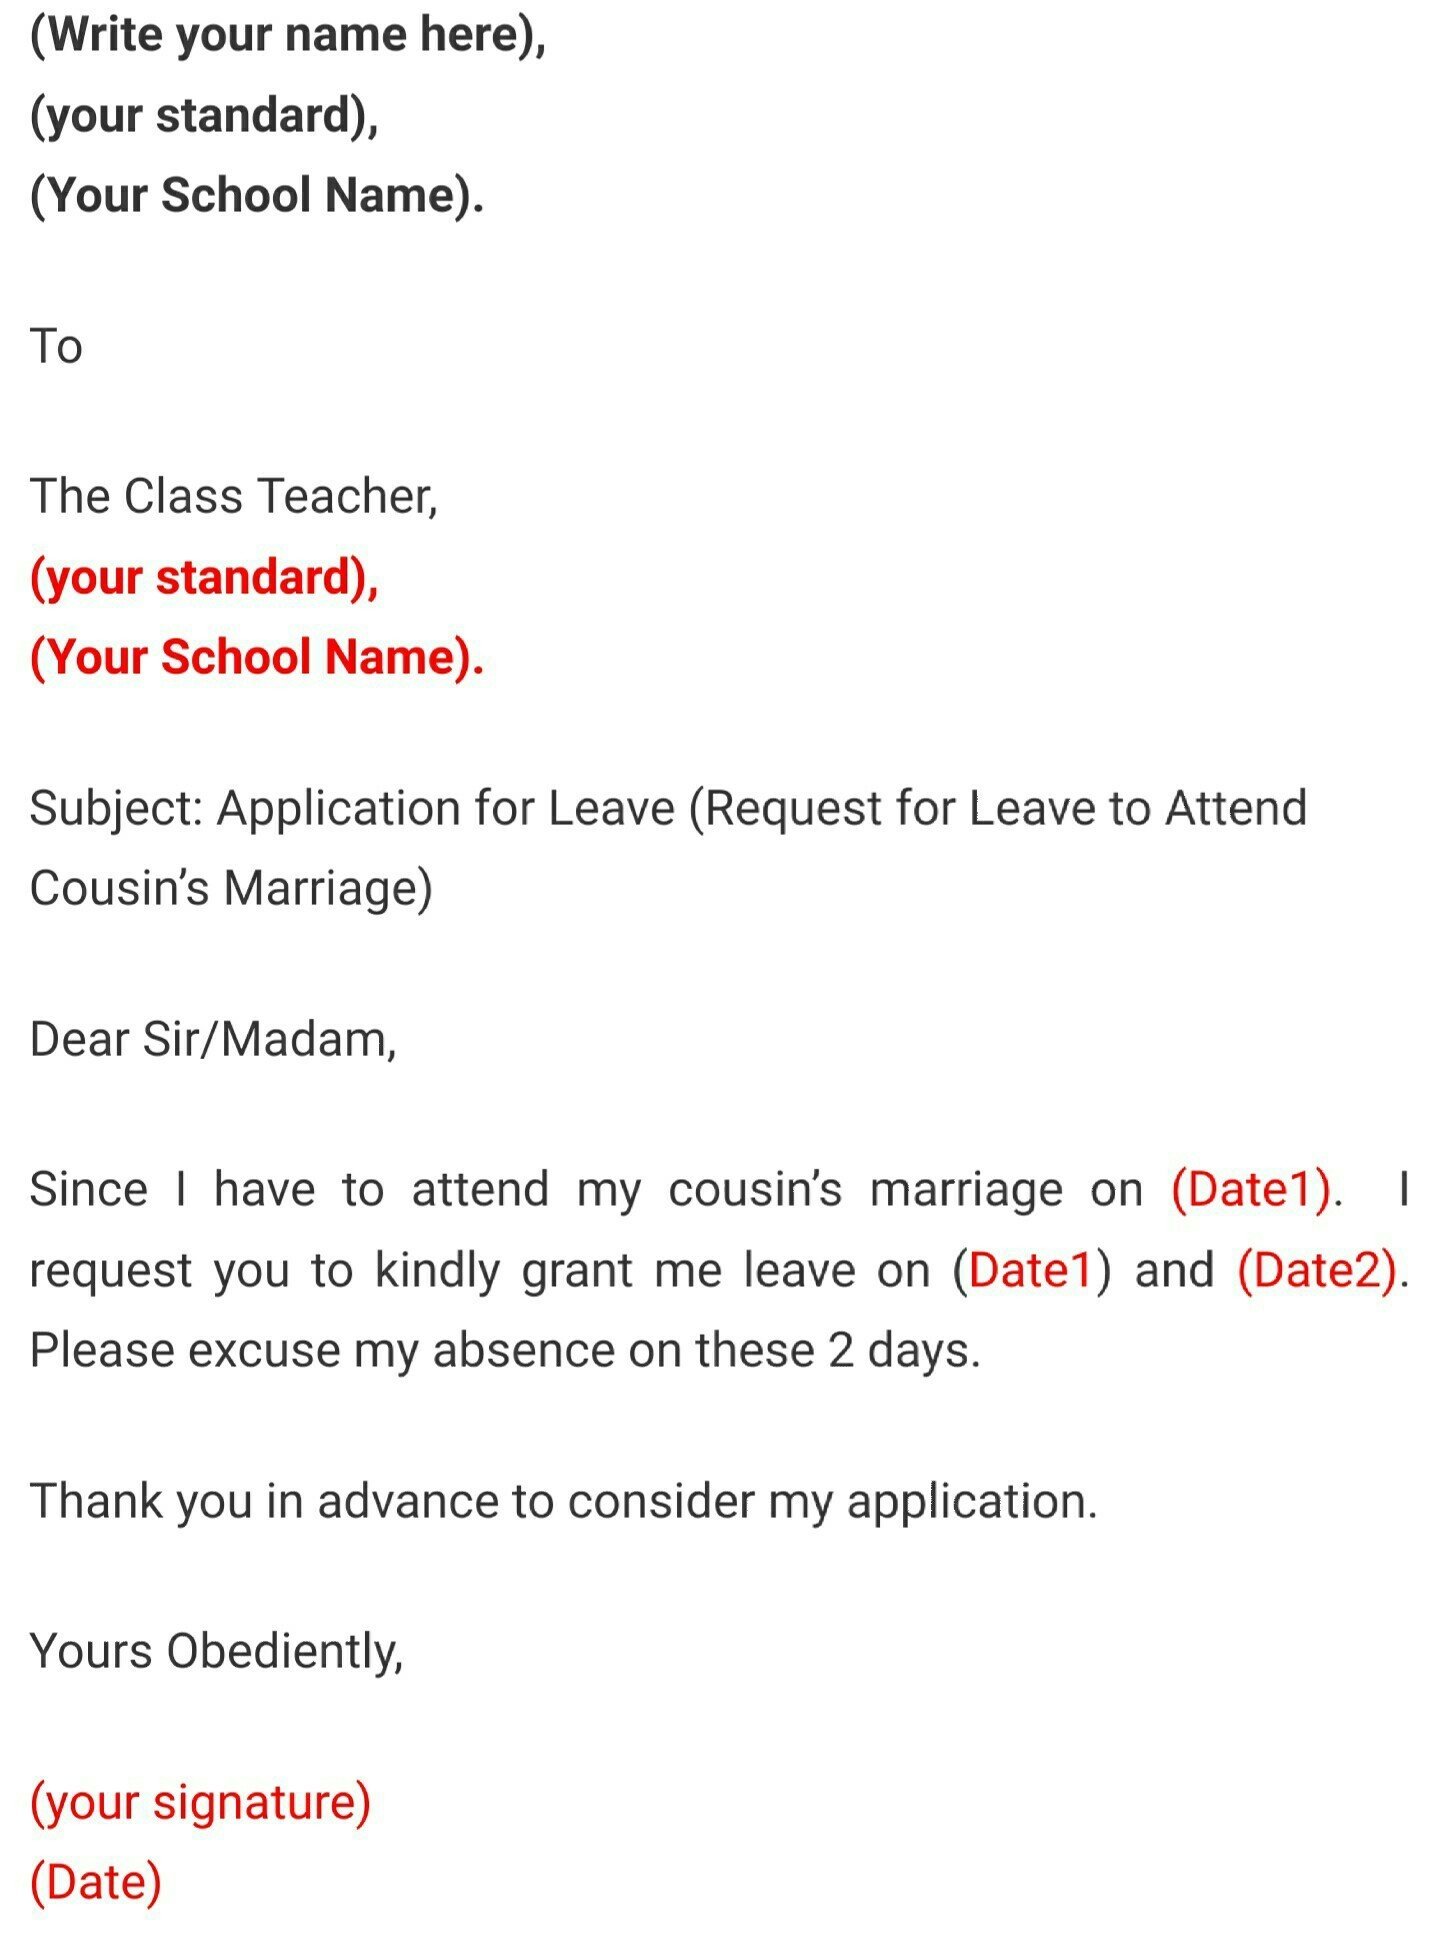 Leave application for cousin sister marriage for school